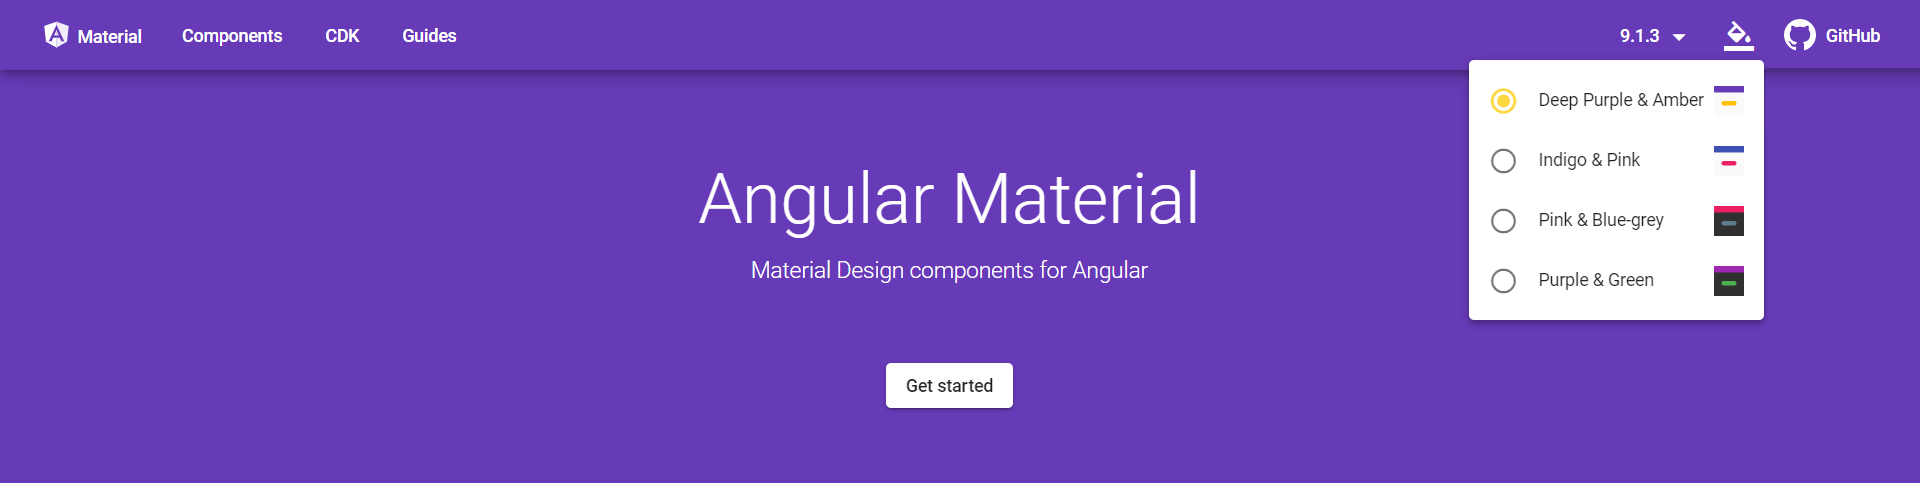 Theme Picker on material.angular.io